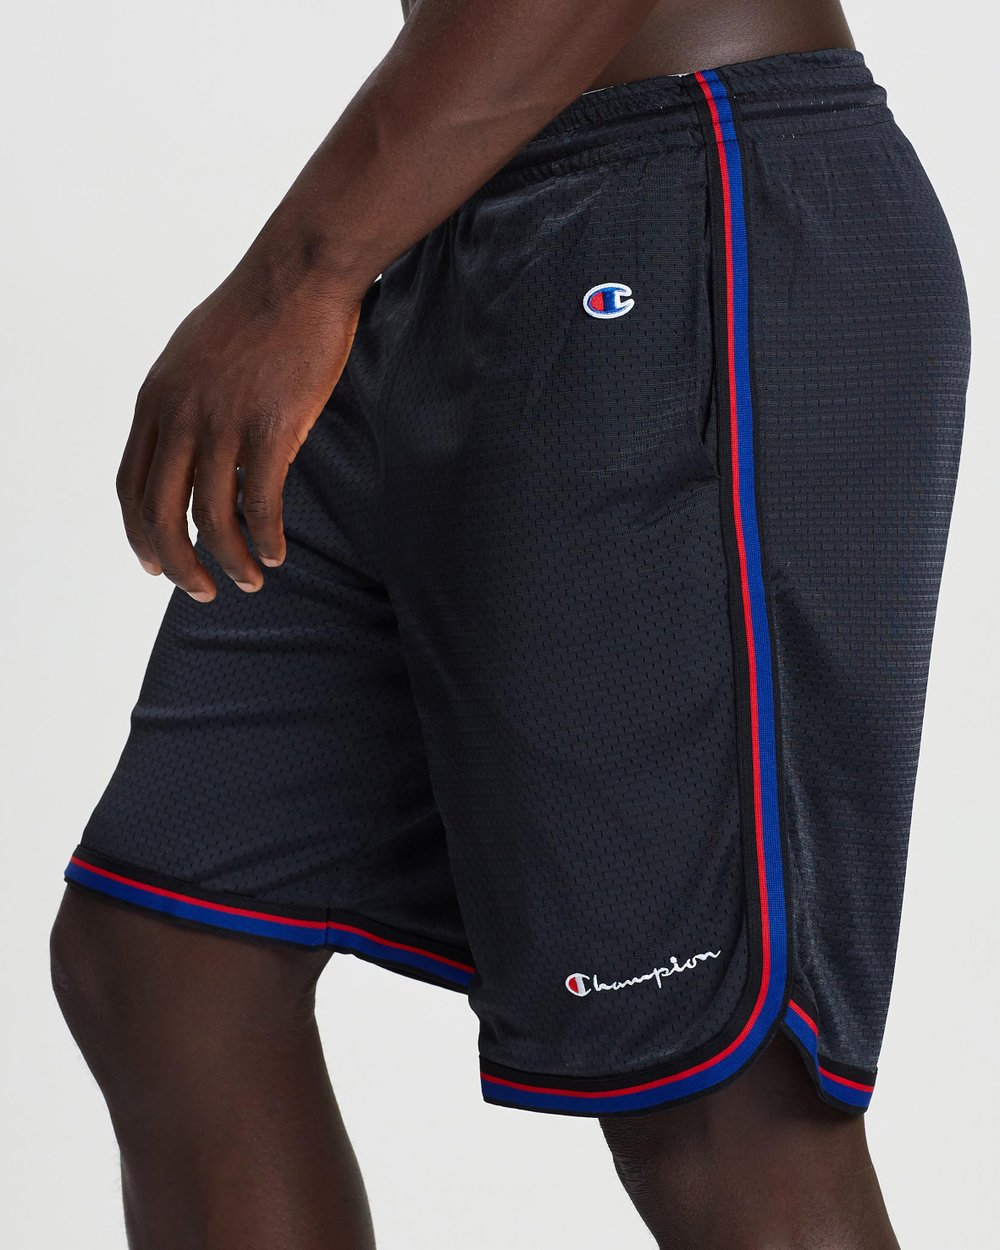 reputable site 3ec5d b6ca9 Basketball Shorts by Champion Online   THE ICONIC   Australia